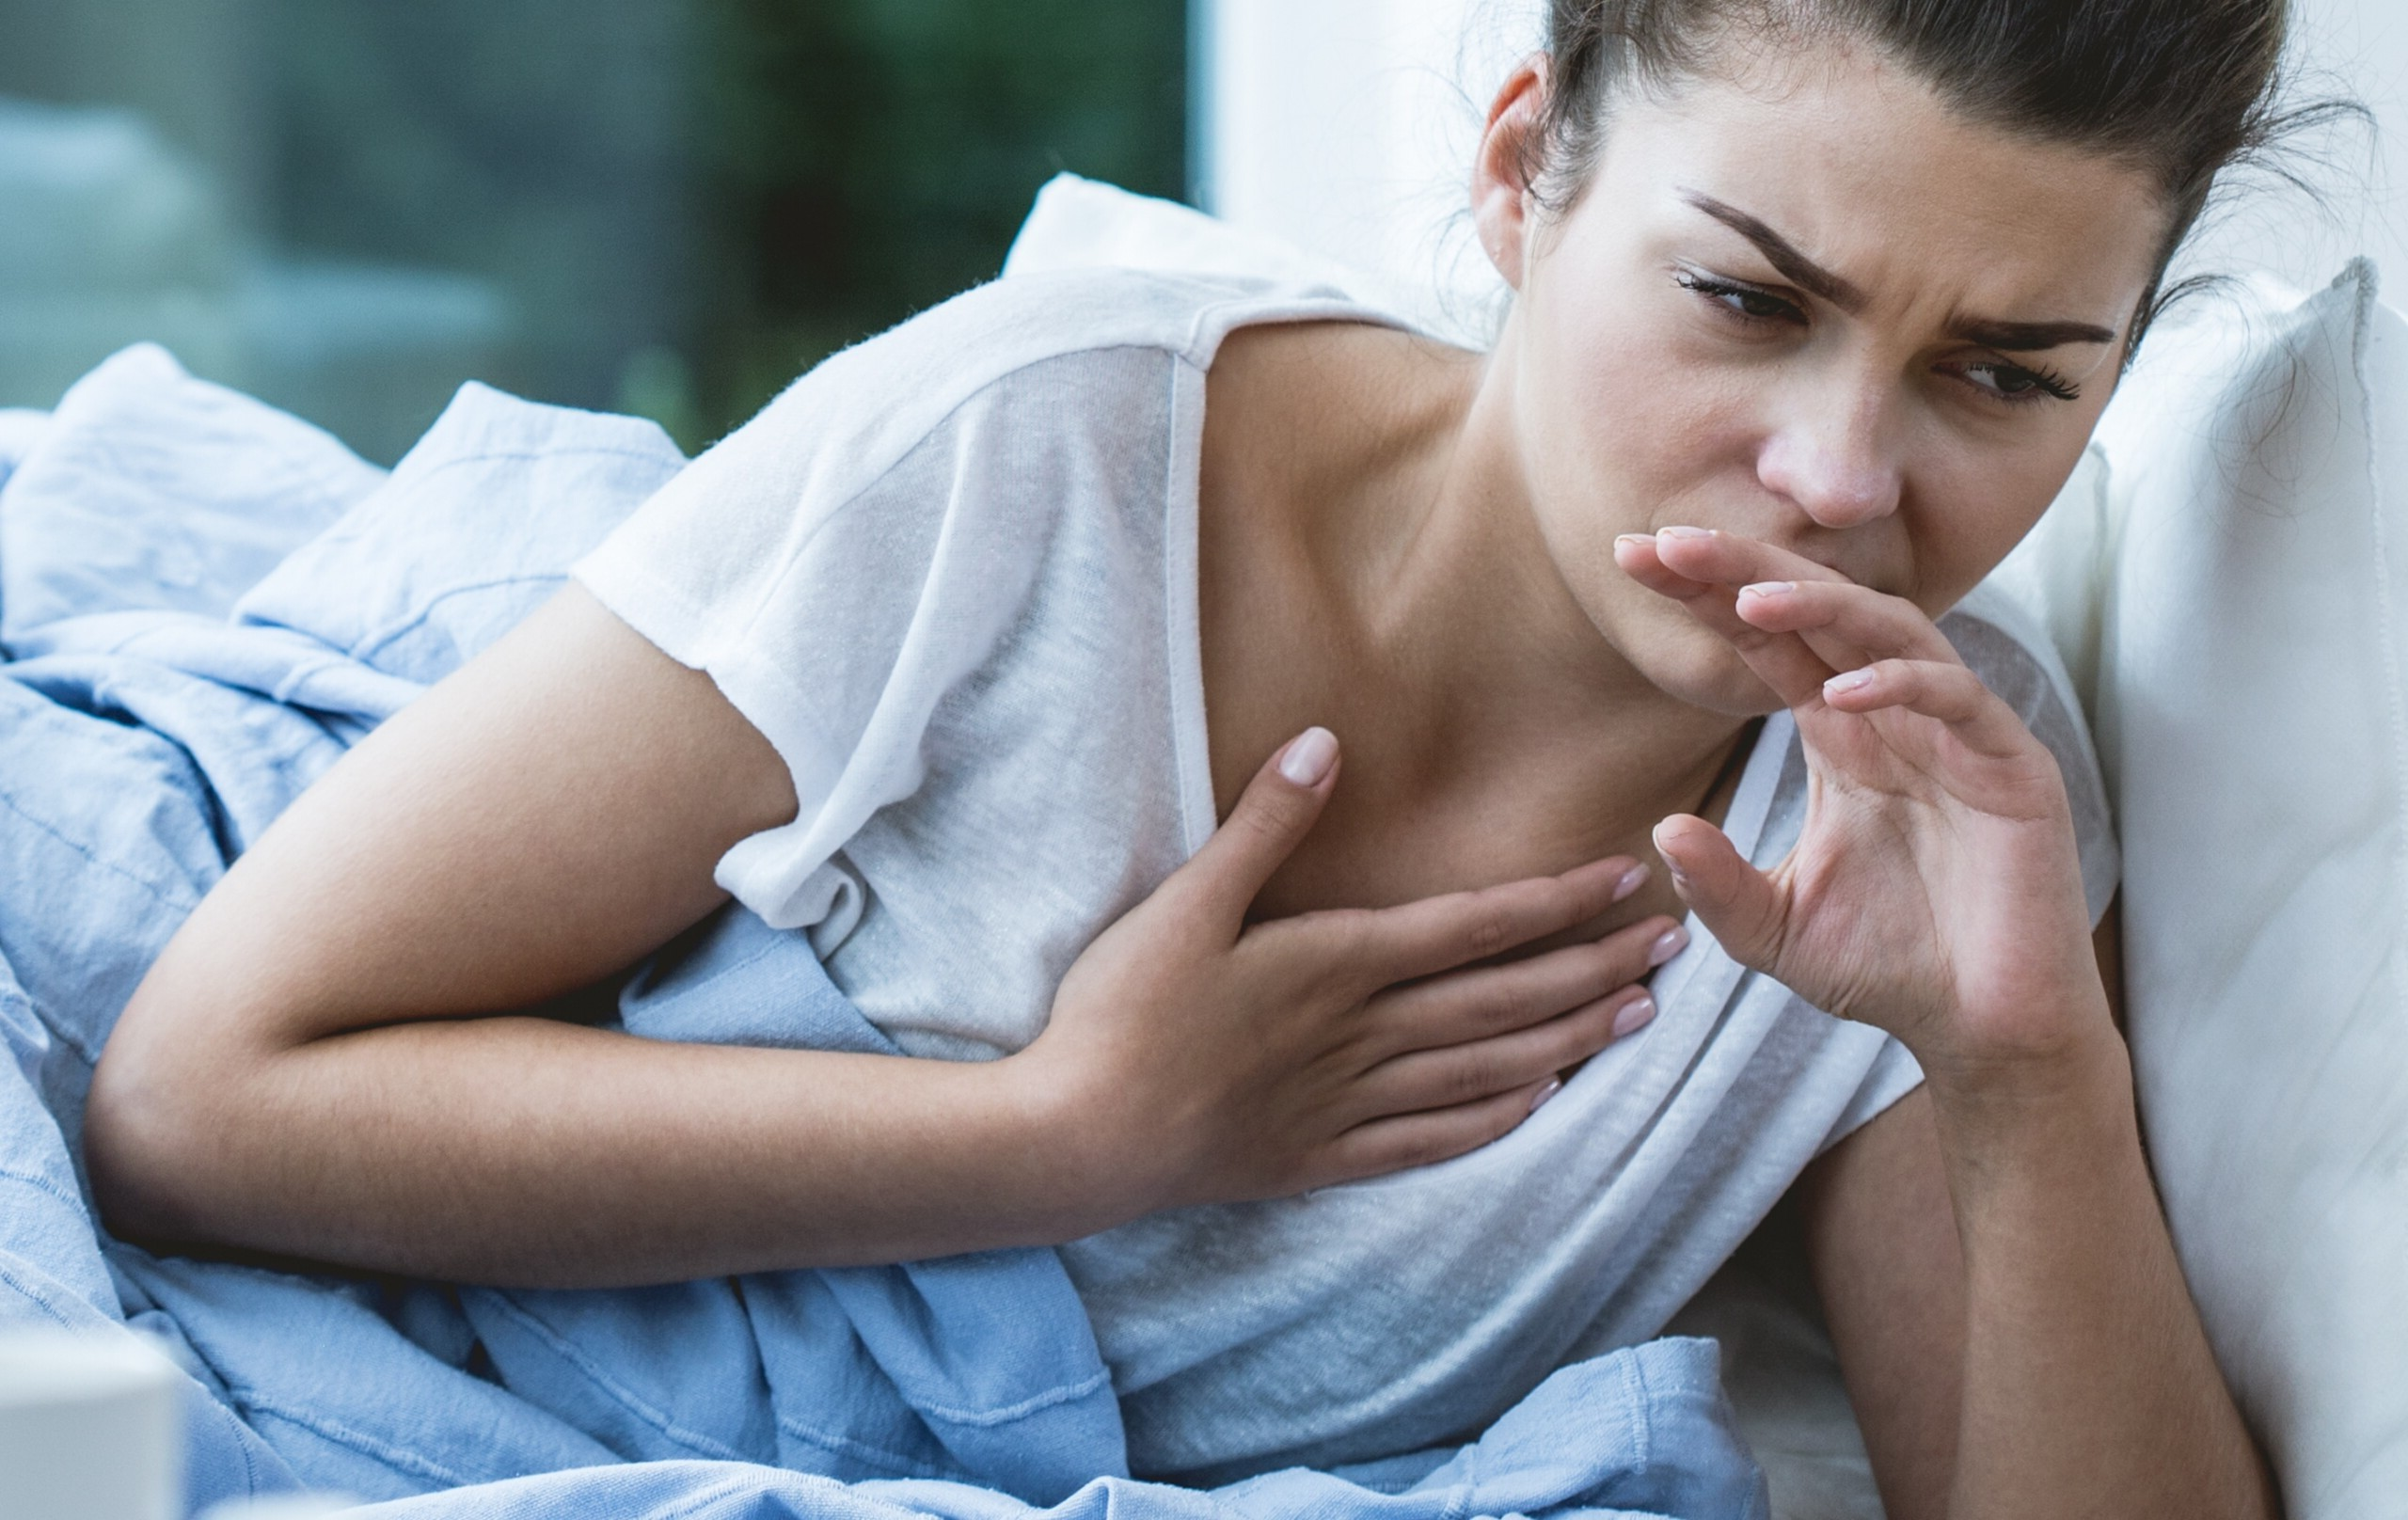 When Bed Elevation Won't Prevent Acid Reflux